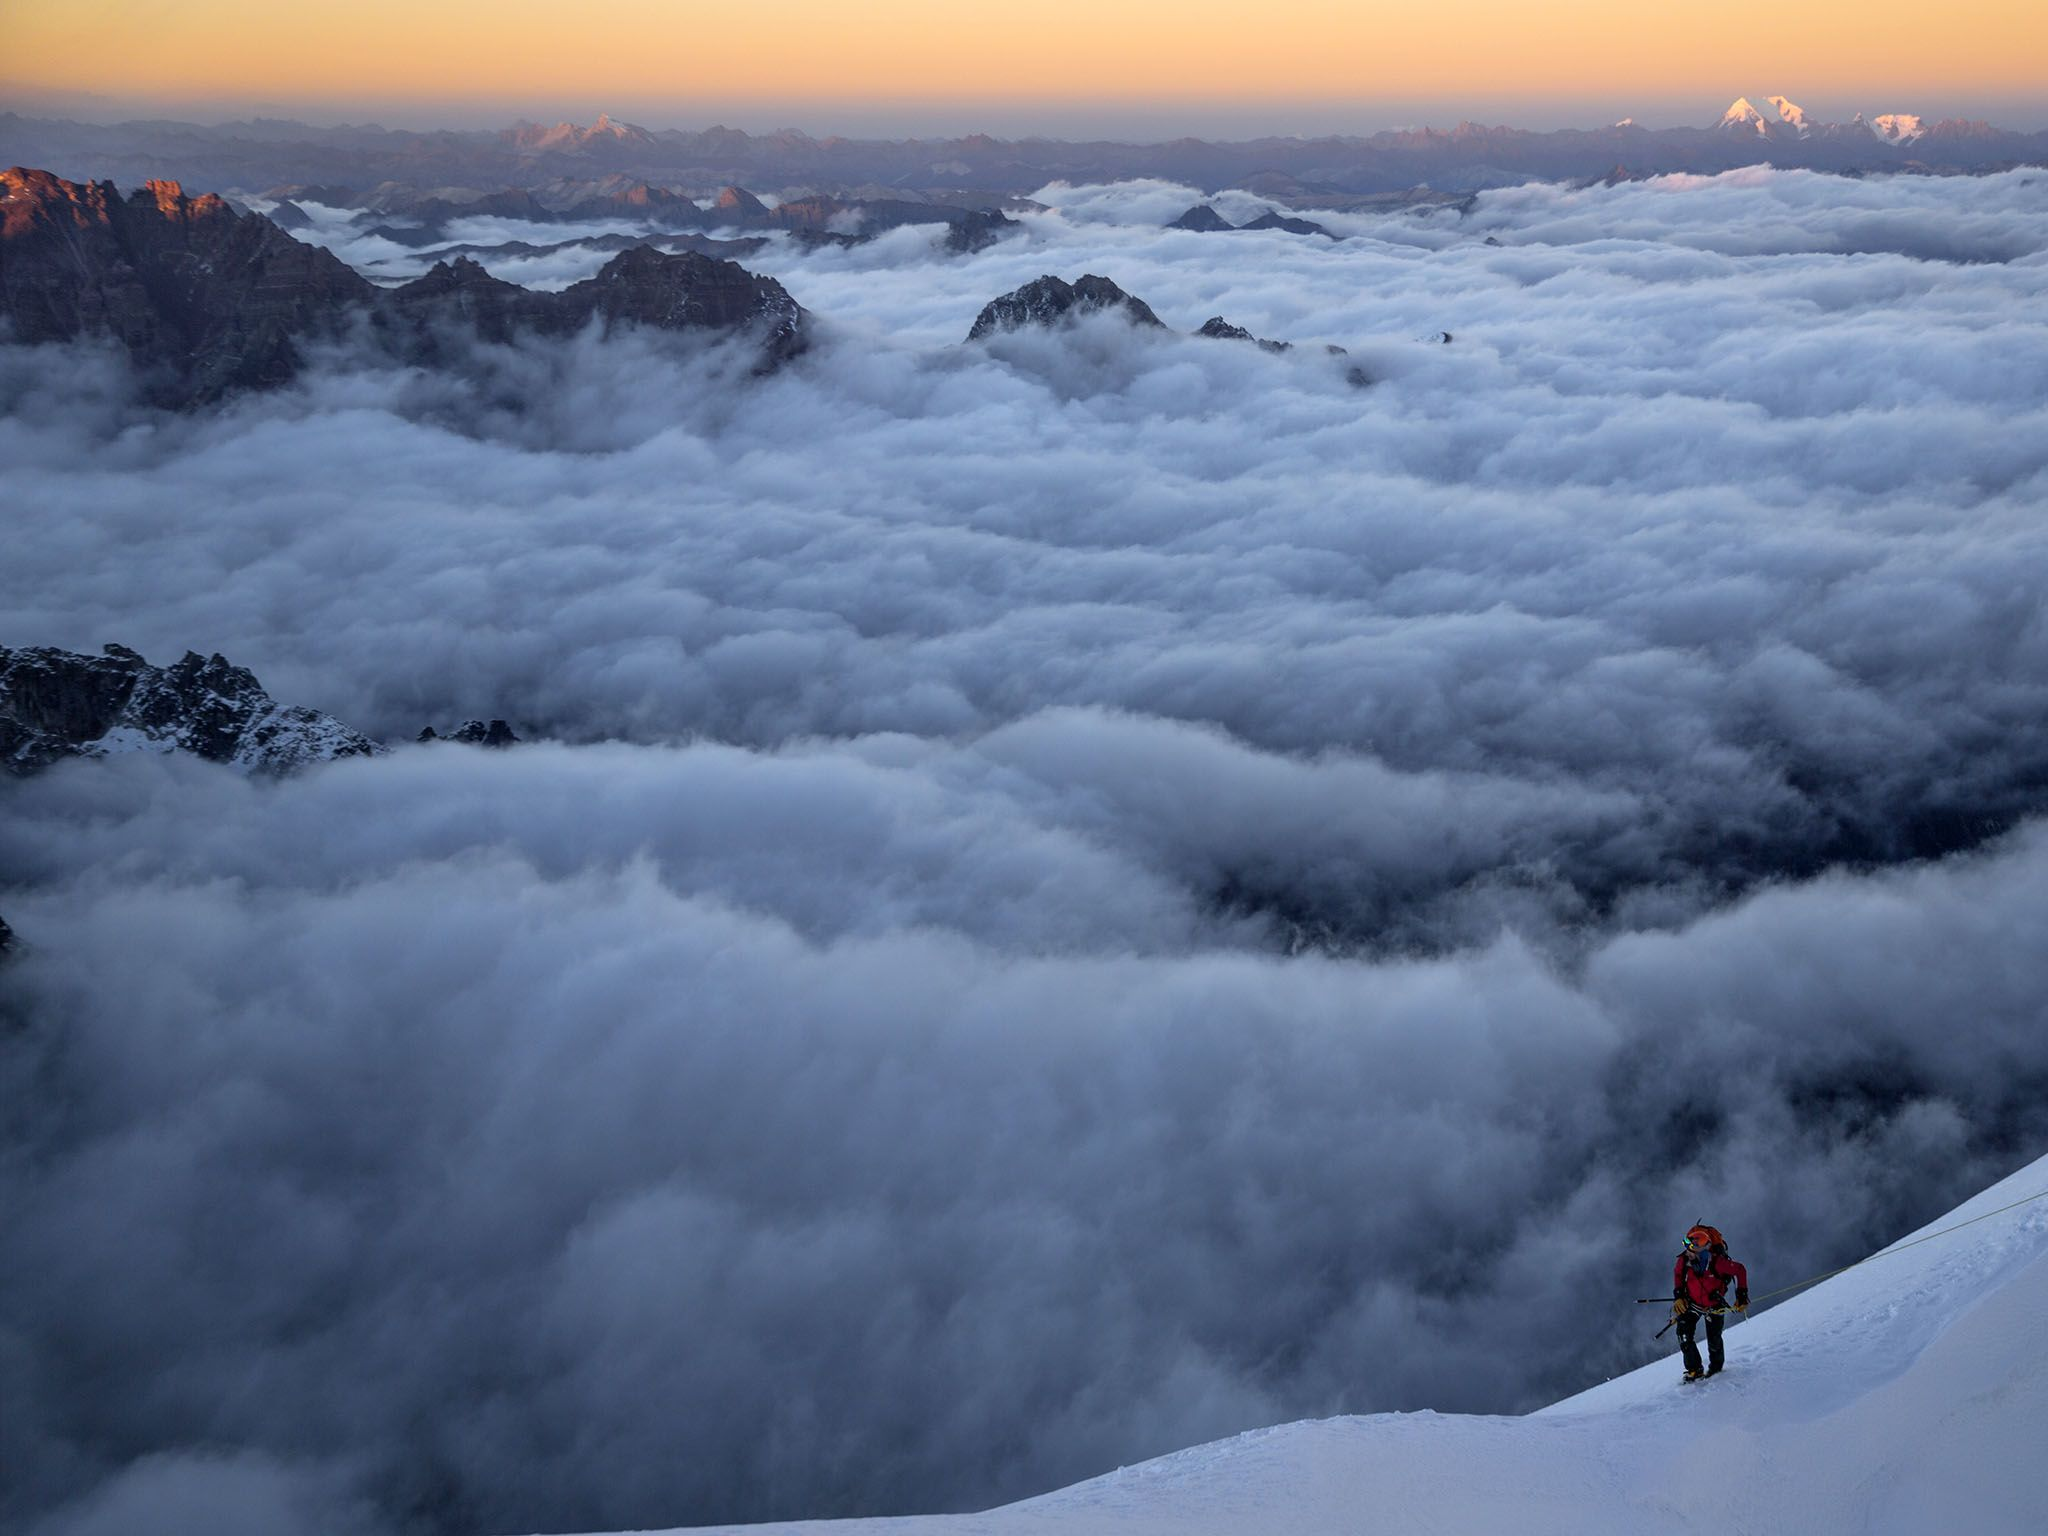 Kachin, Myanmar: Renan Ozturk climbing toward the summit of Hkakabo Razi way up over the clouds.... [Photo of the day - می 2016]